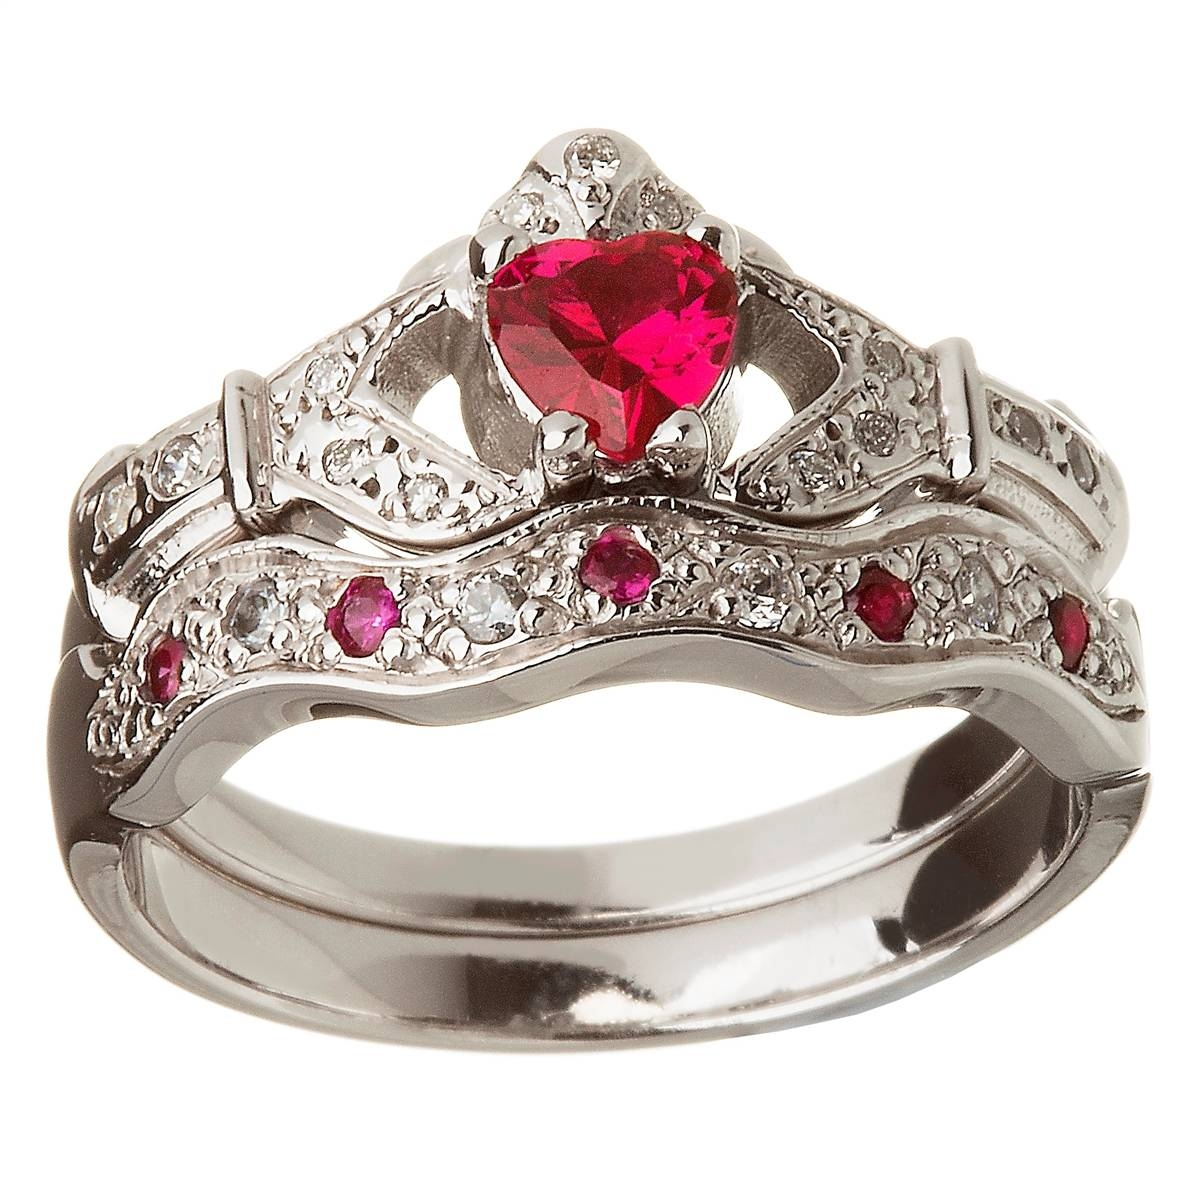 14k White Gold Ruby Set Heart Claddagh Ring & Wedding Ring Set With Regard To Claddagh Rings Engagement (View 13 of 15)